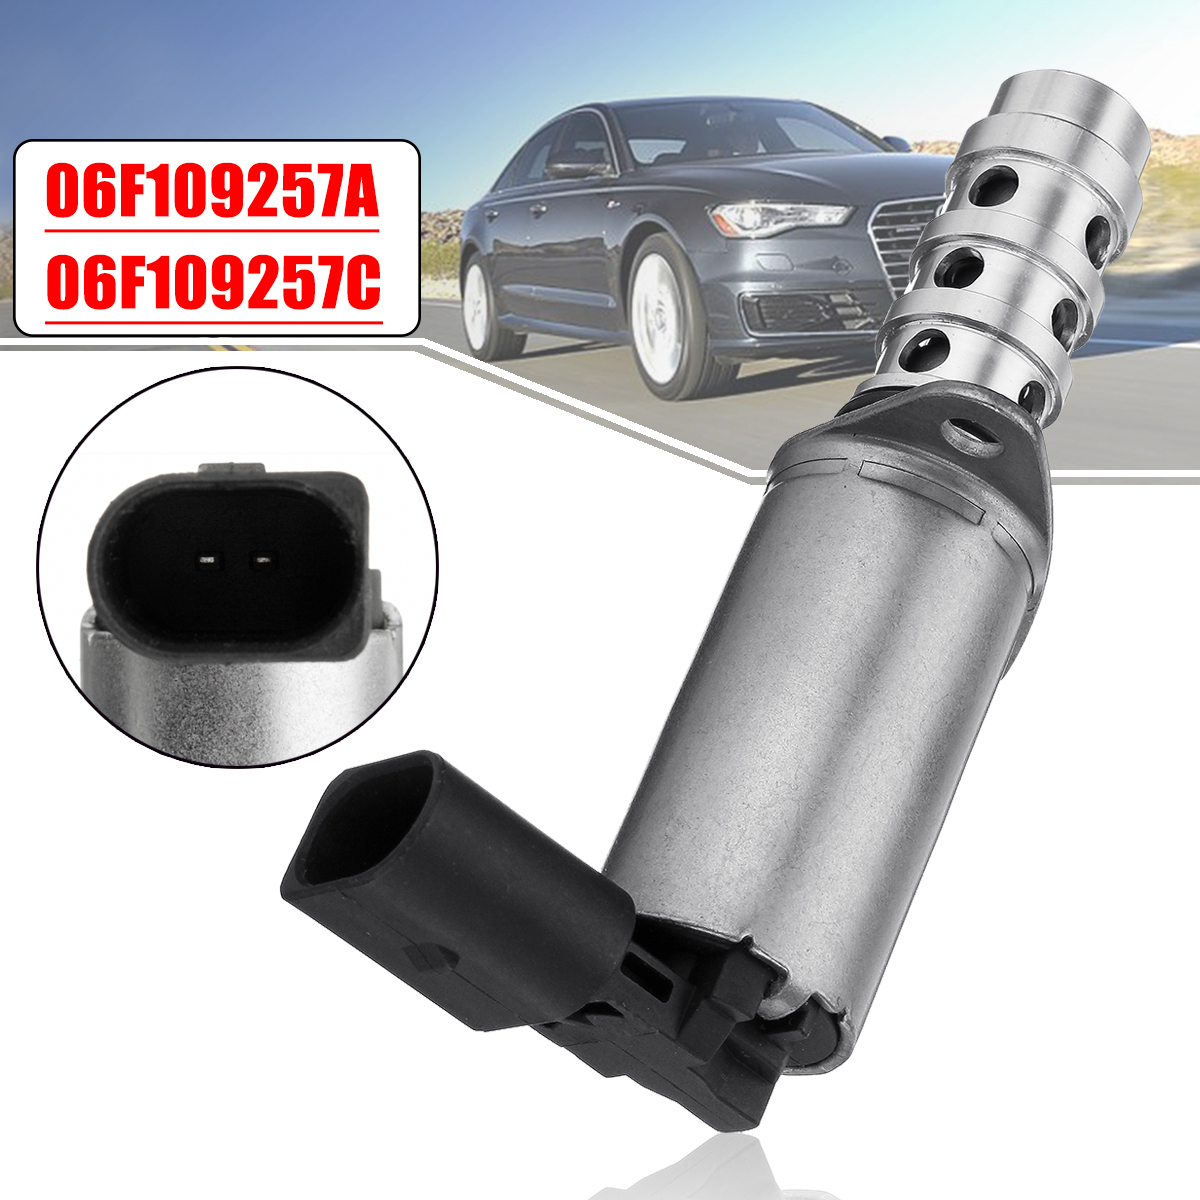 06F109257C 06F109257A Car VVT Variable Timing Solenoid Camshaft Oil Control Valve For Audi VW Seat for Skoda